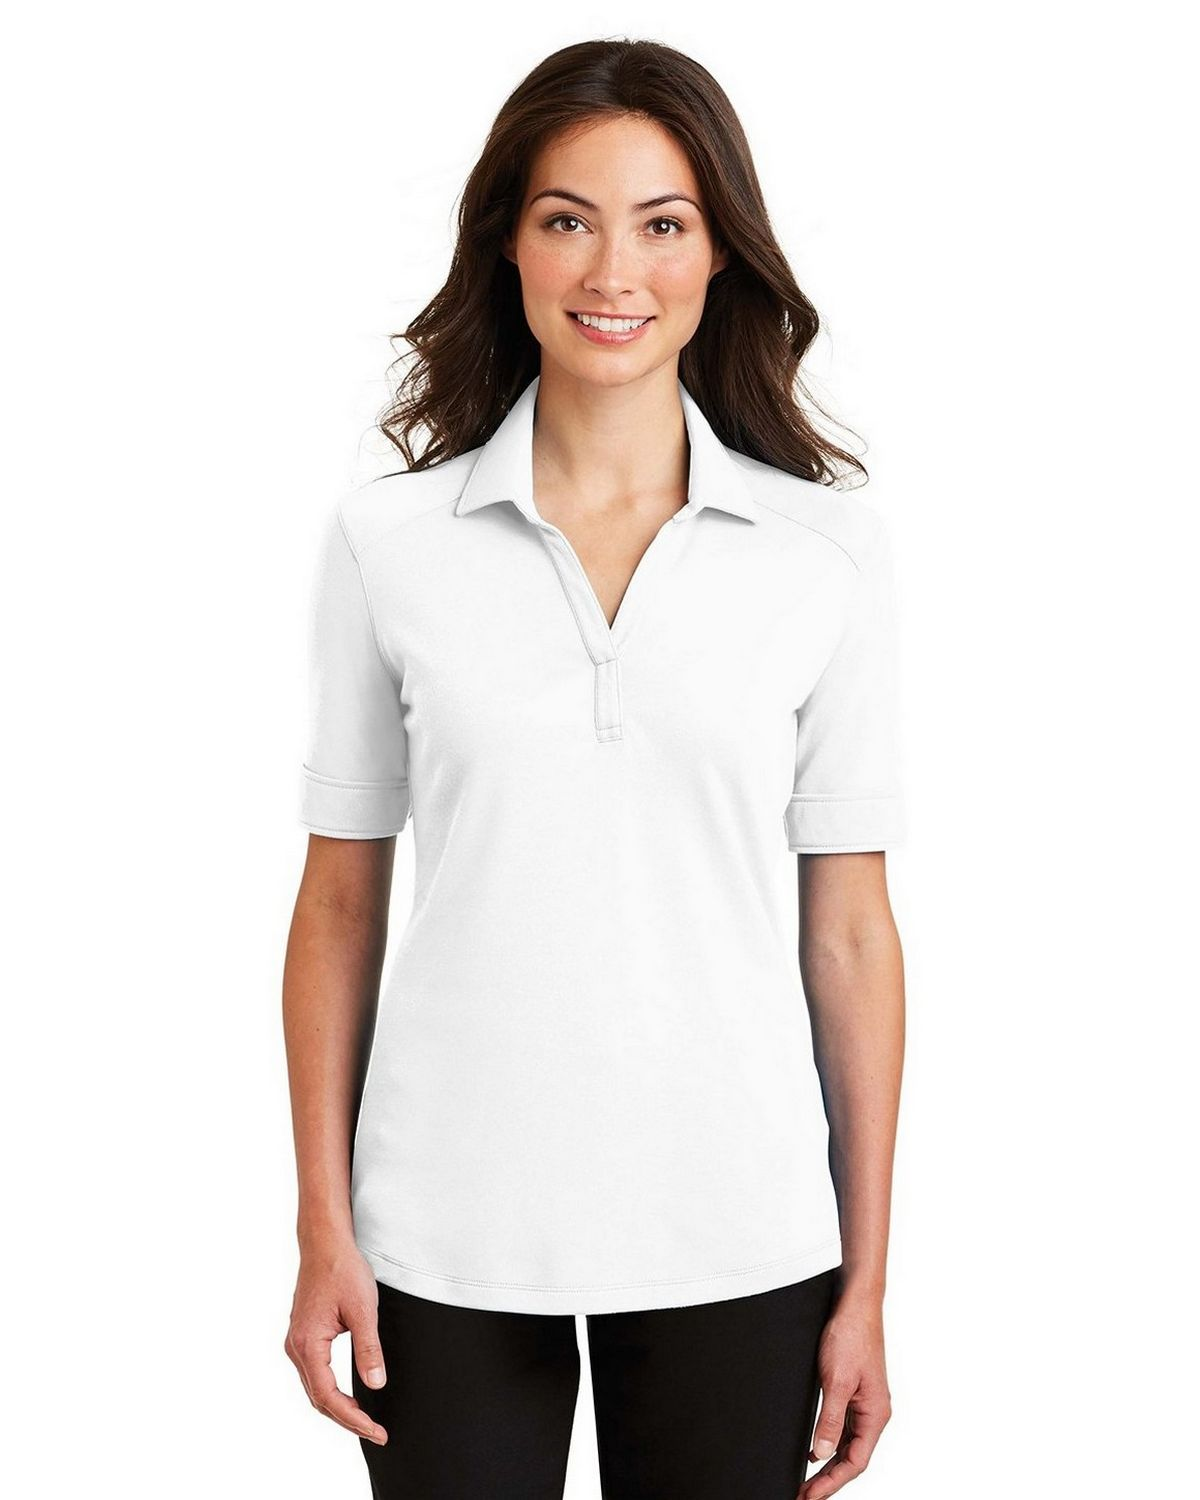 Port Authority L5200 Women's Silk Touch Interlock Performance Polo - White - XS #silk